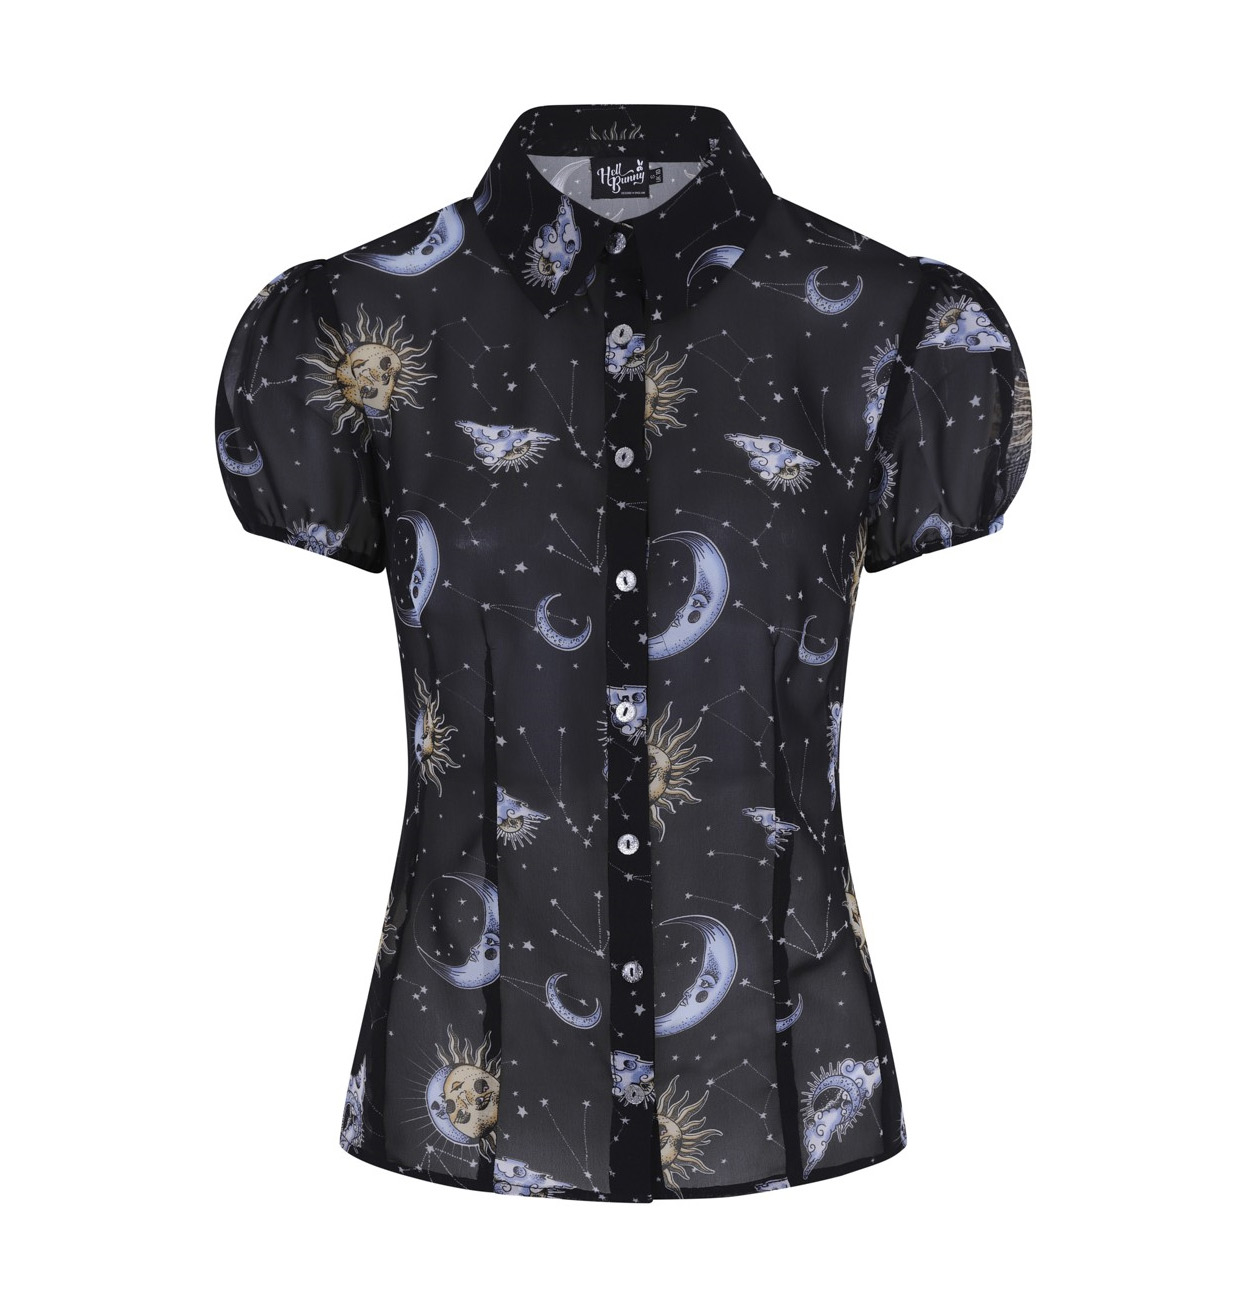 Hell-Bunny-50s-Shirt-Top-Gothic-Black-Sun-Moon-Stars-SOLARIS-Blouse-All-Sizes thumbnail 41